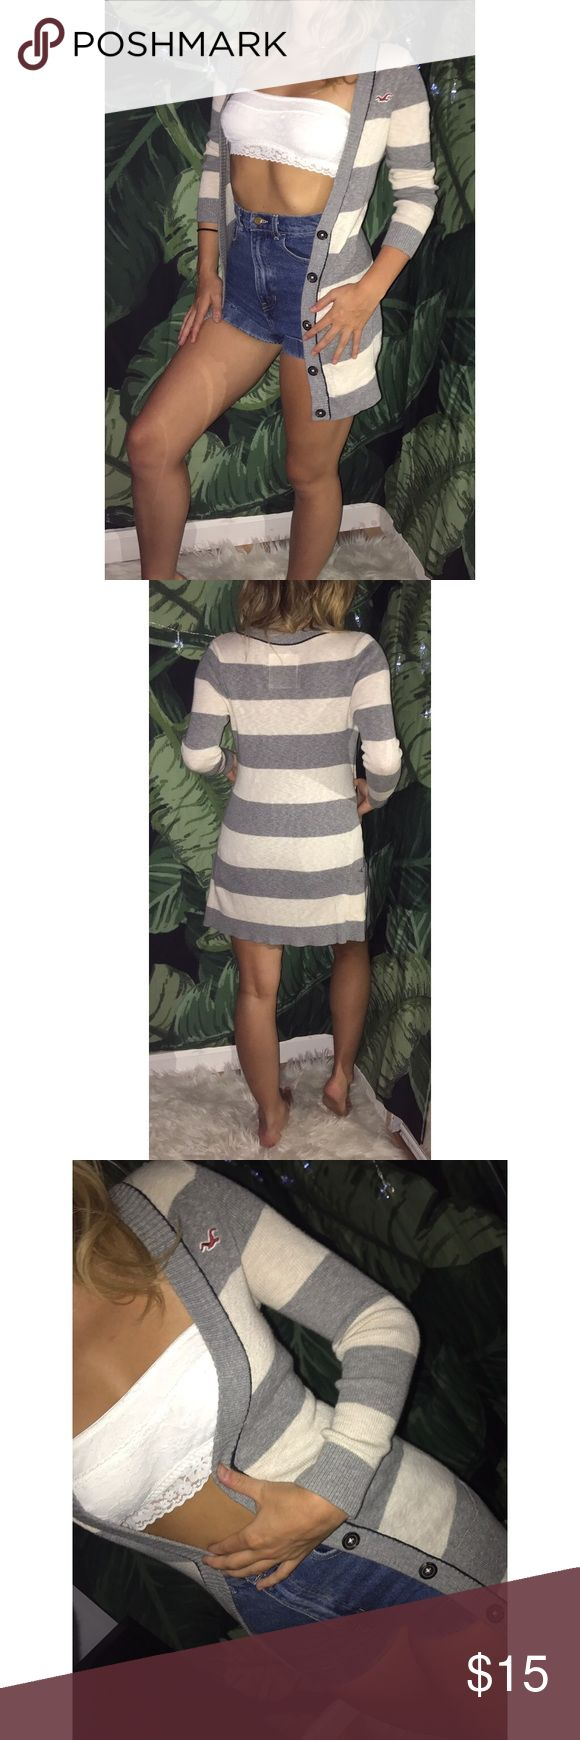 😻😻STRIPED CARDIGAN😻😻 very lightweight cardigan super comfy & adorable!!! grey & white stripes with no damage at all!!! one of my favorites!!! i used to style with a red t shirt dress, black belt with gold buckle, thigh high socks & thick frame glasses for librarian vibes!!! Hollister Sweaters Cardigans